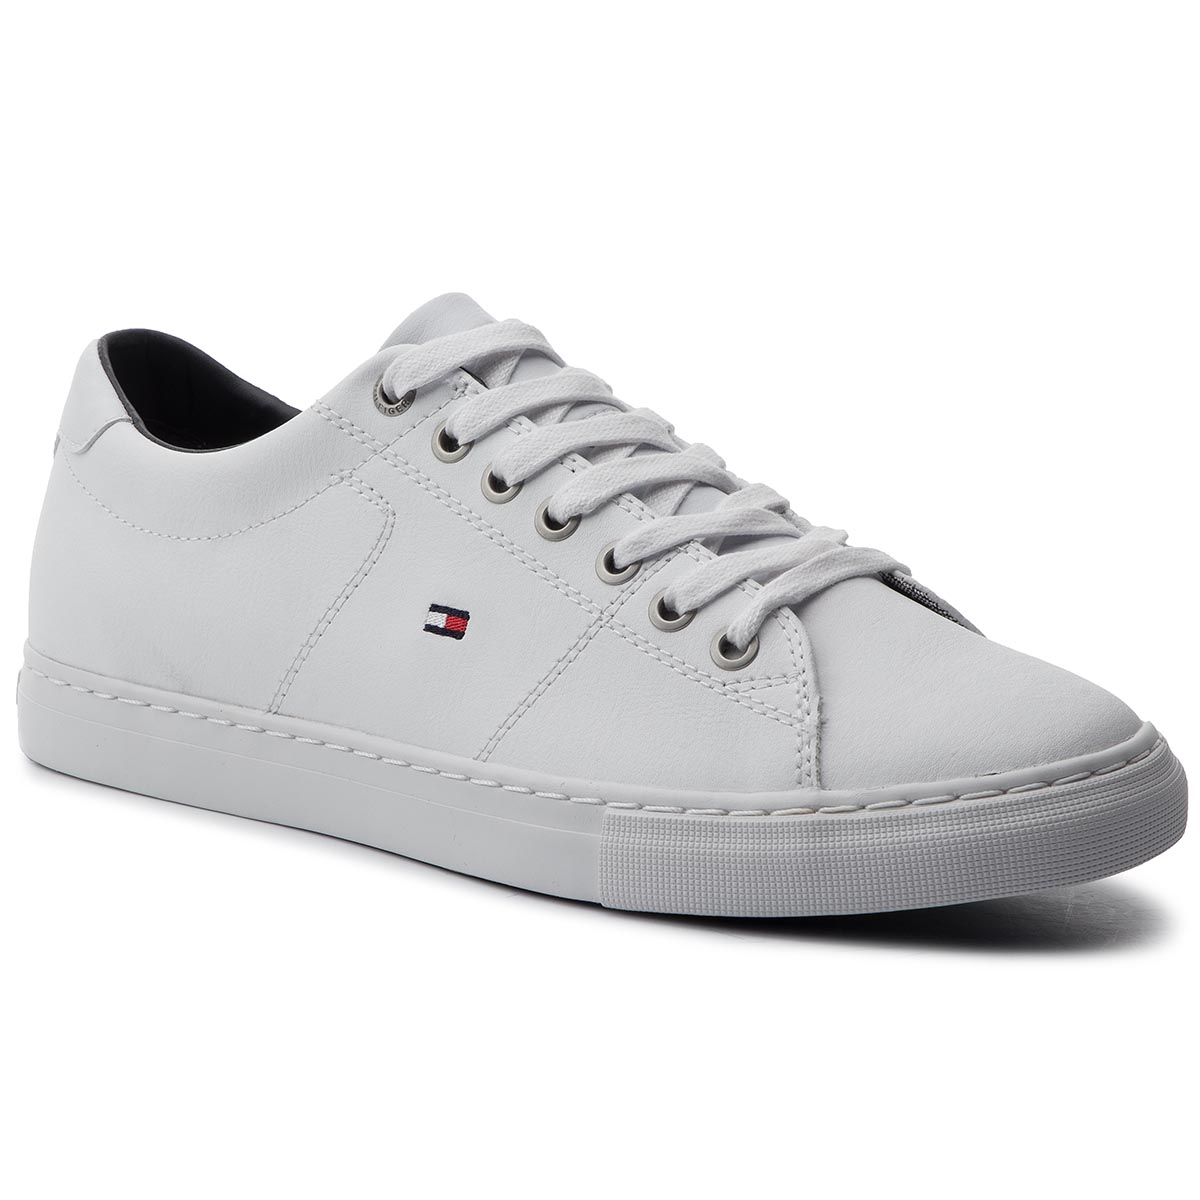 266ed1d447 Sneakers TOMMY HILFIGER Essential Leather Sneaker FM0FM02157 White 100